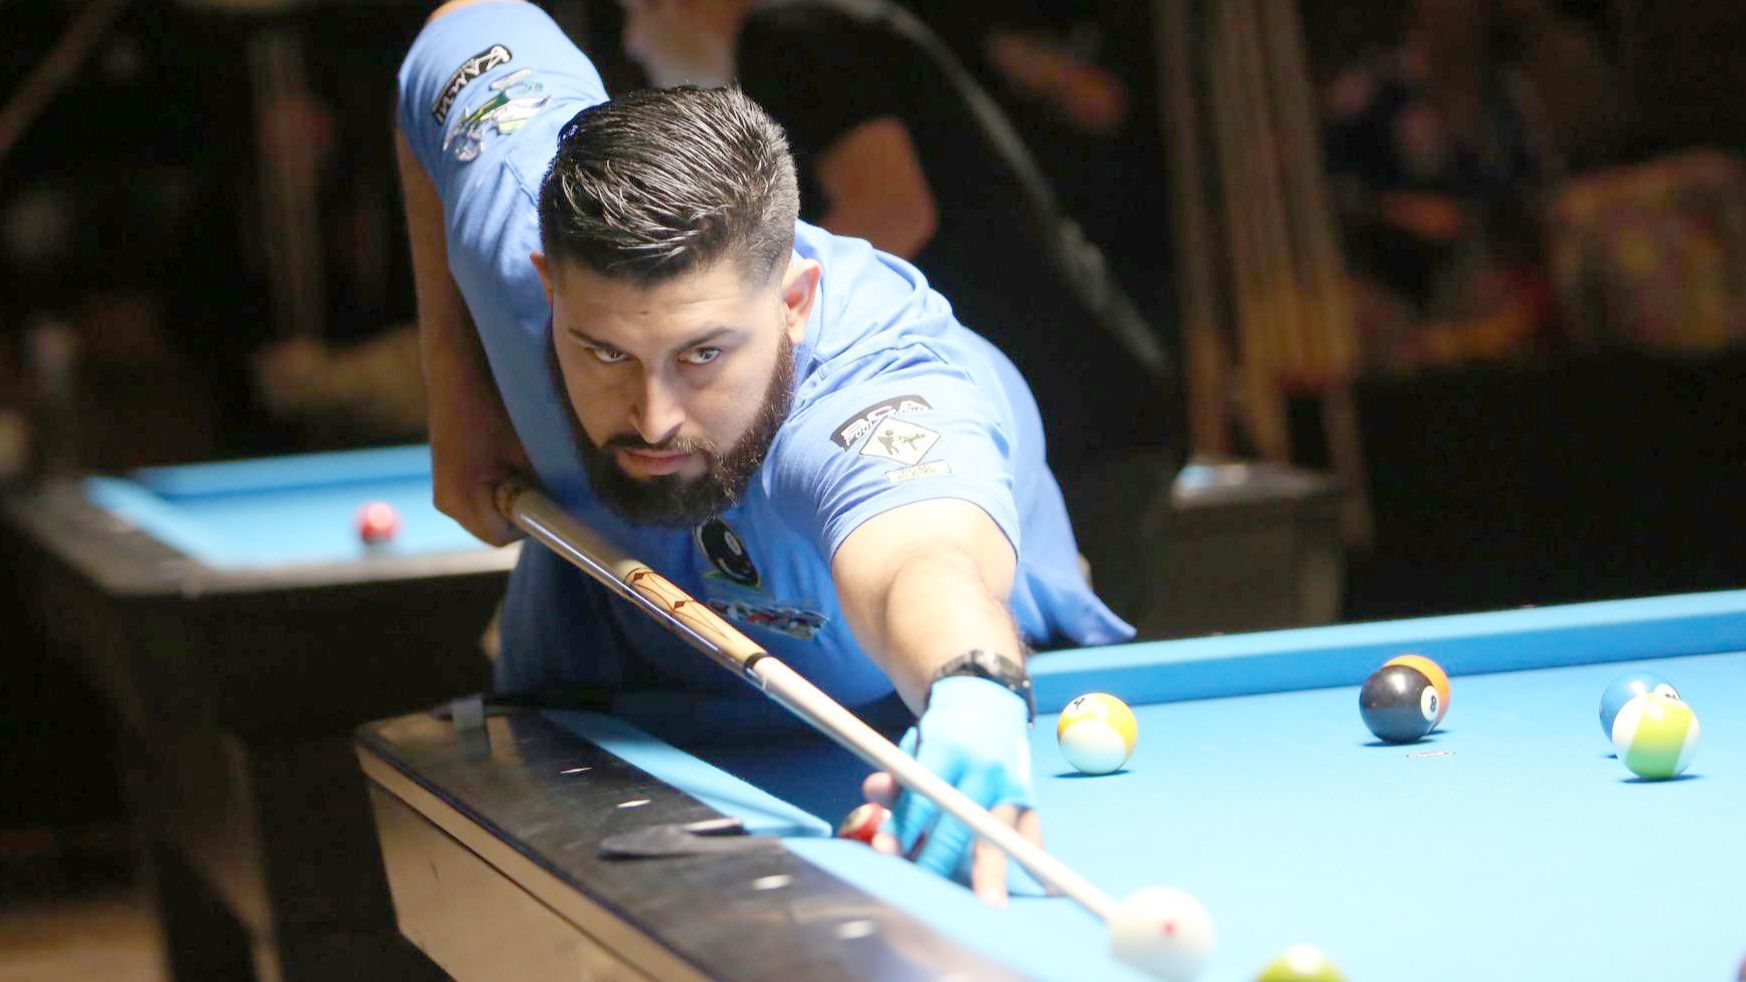 Substitue player Michael Quilo joins the Shenanigans pool team of Ramona in competing at the 2018 BCA Pool League World Championships.